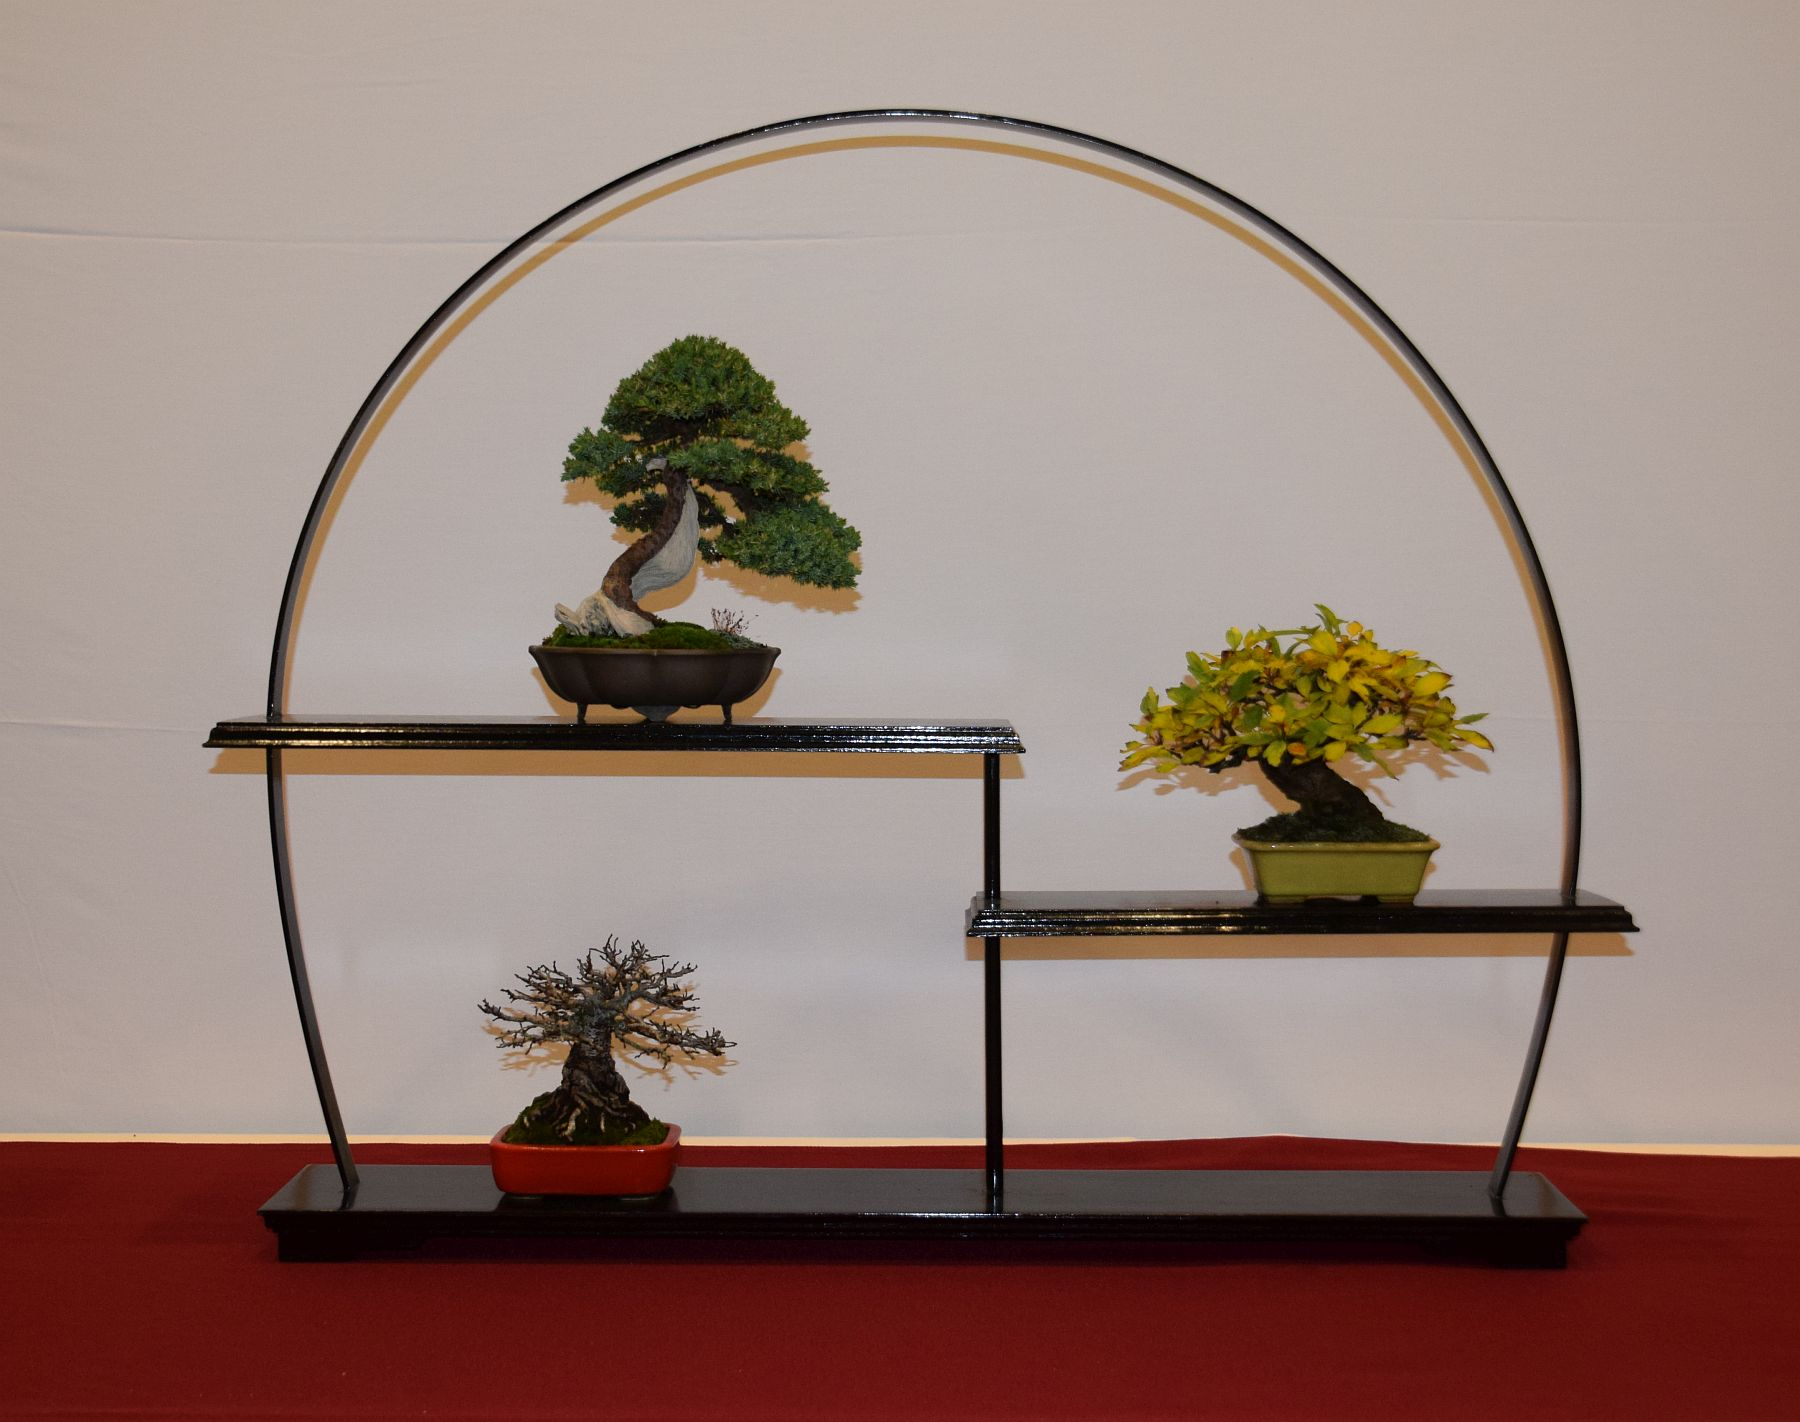 euk-bonsai-ten-2016-club-bonsai-080